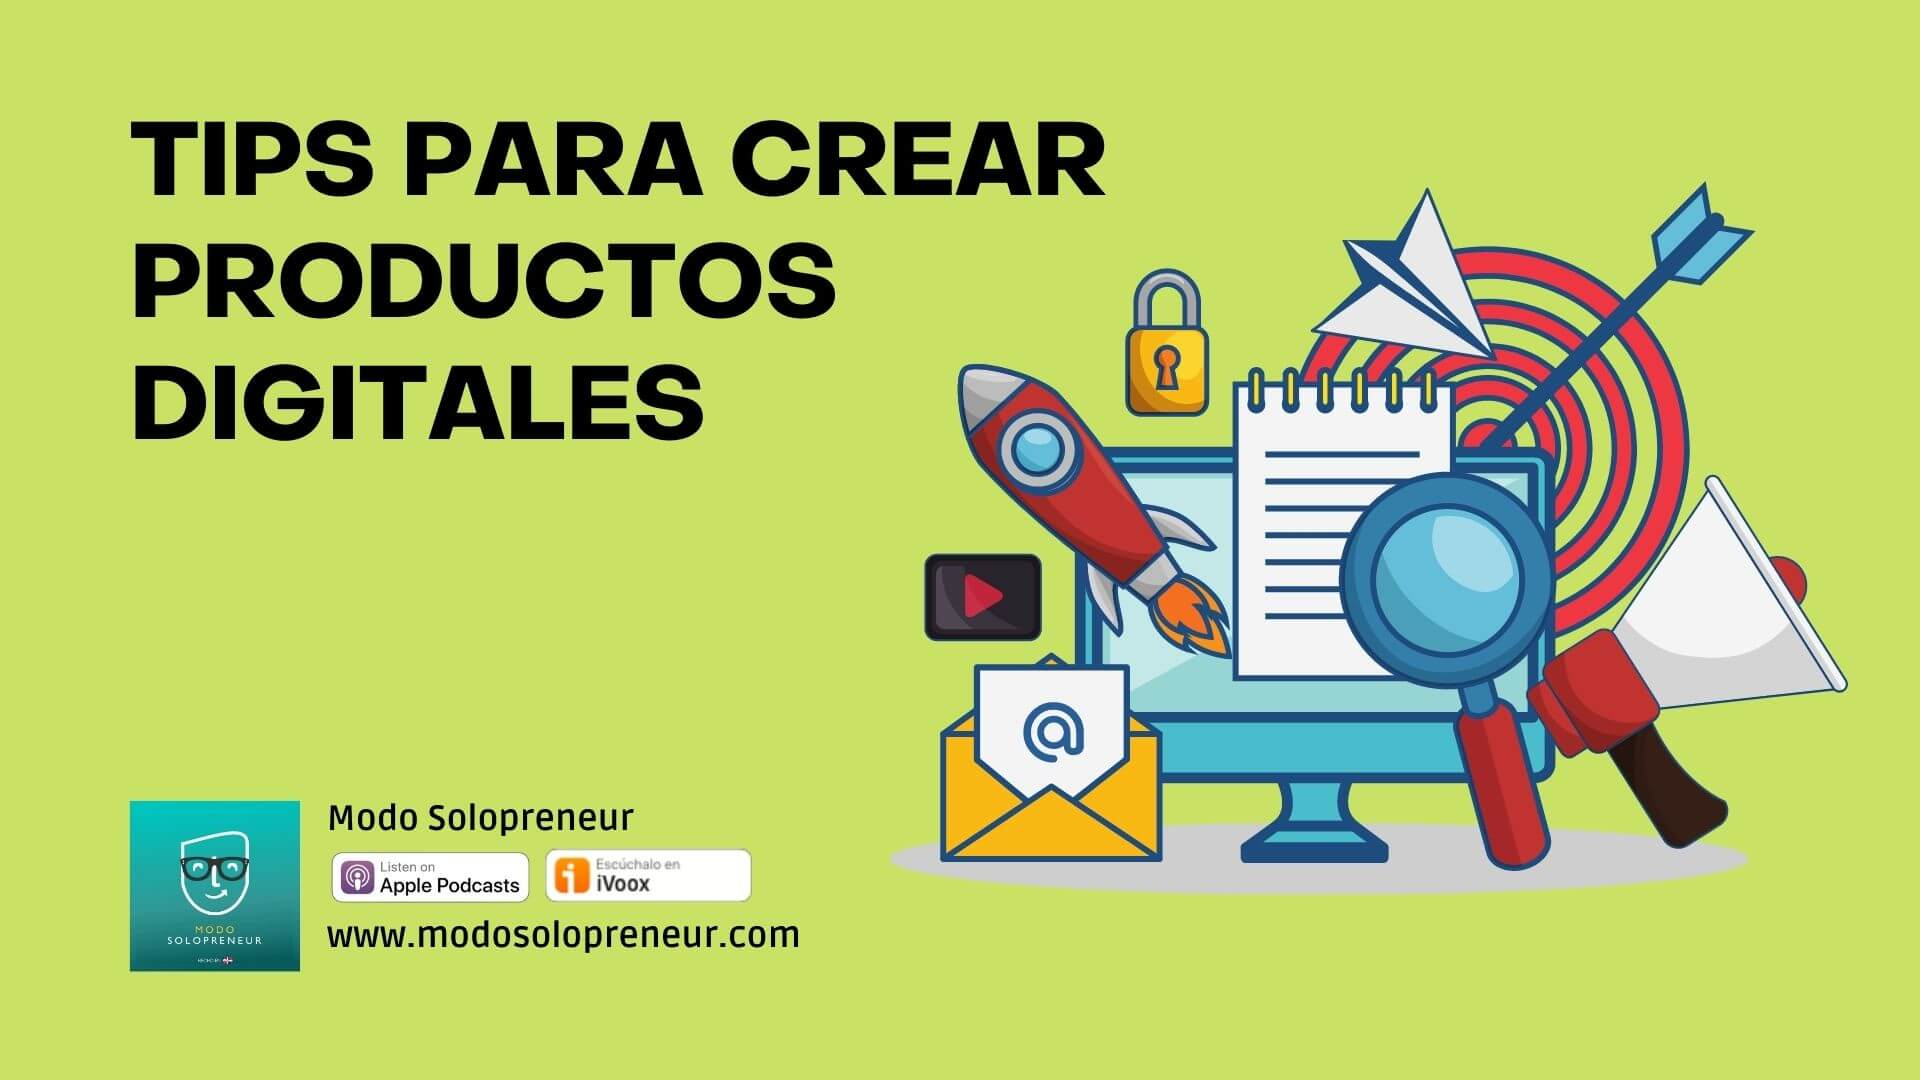 Tips para Crear Productos Digitales